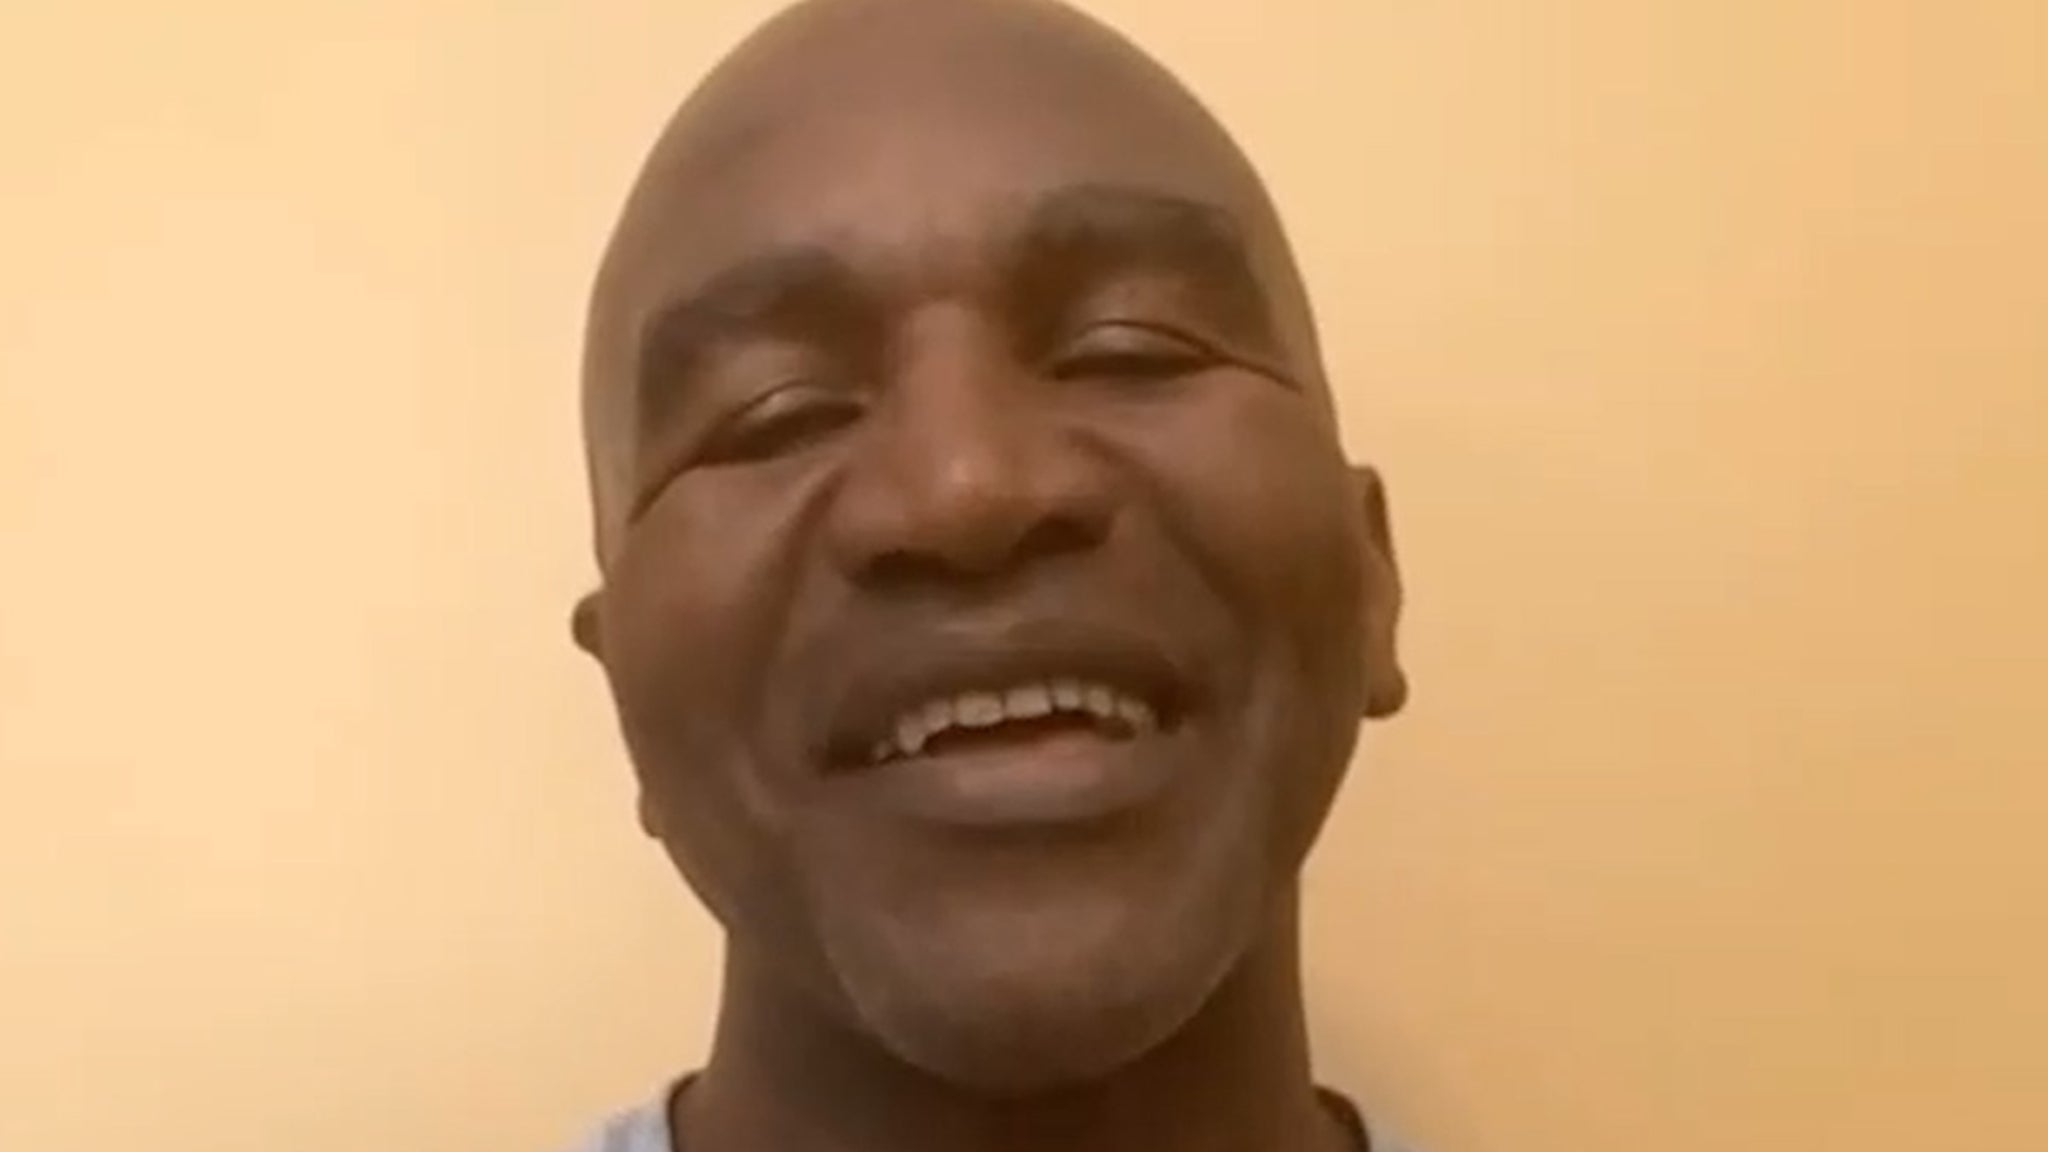 Evander Holyfield Down For 3rd Fight With Tyson, But He's Not My 1st Choice!